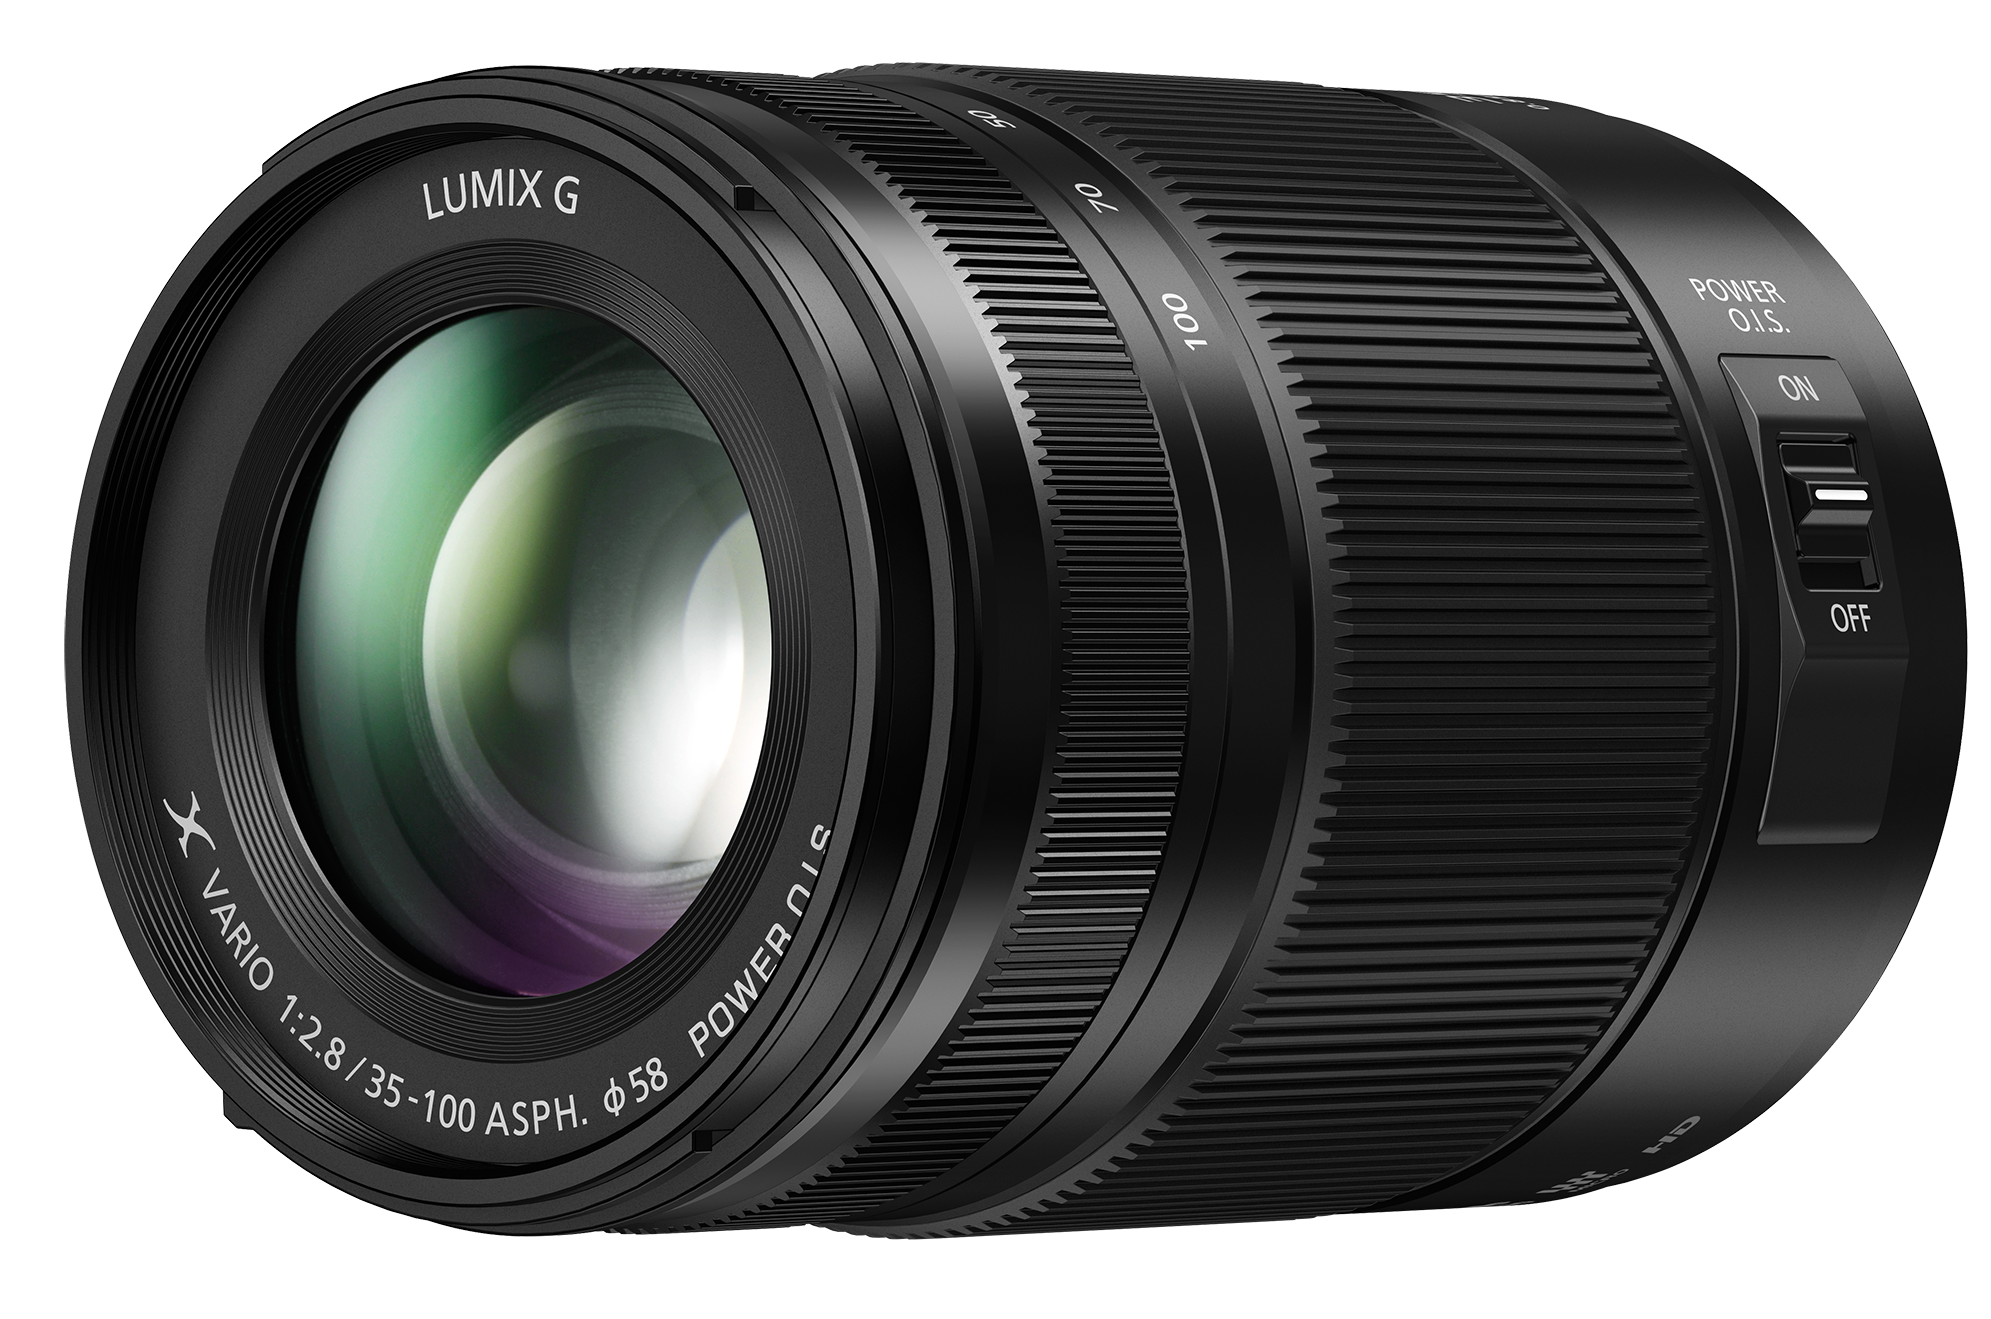 PANASONIC 35-100 mm f/2,8 II Power O.I.S